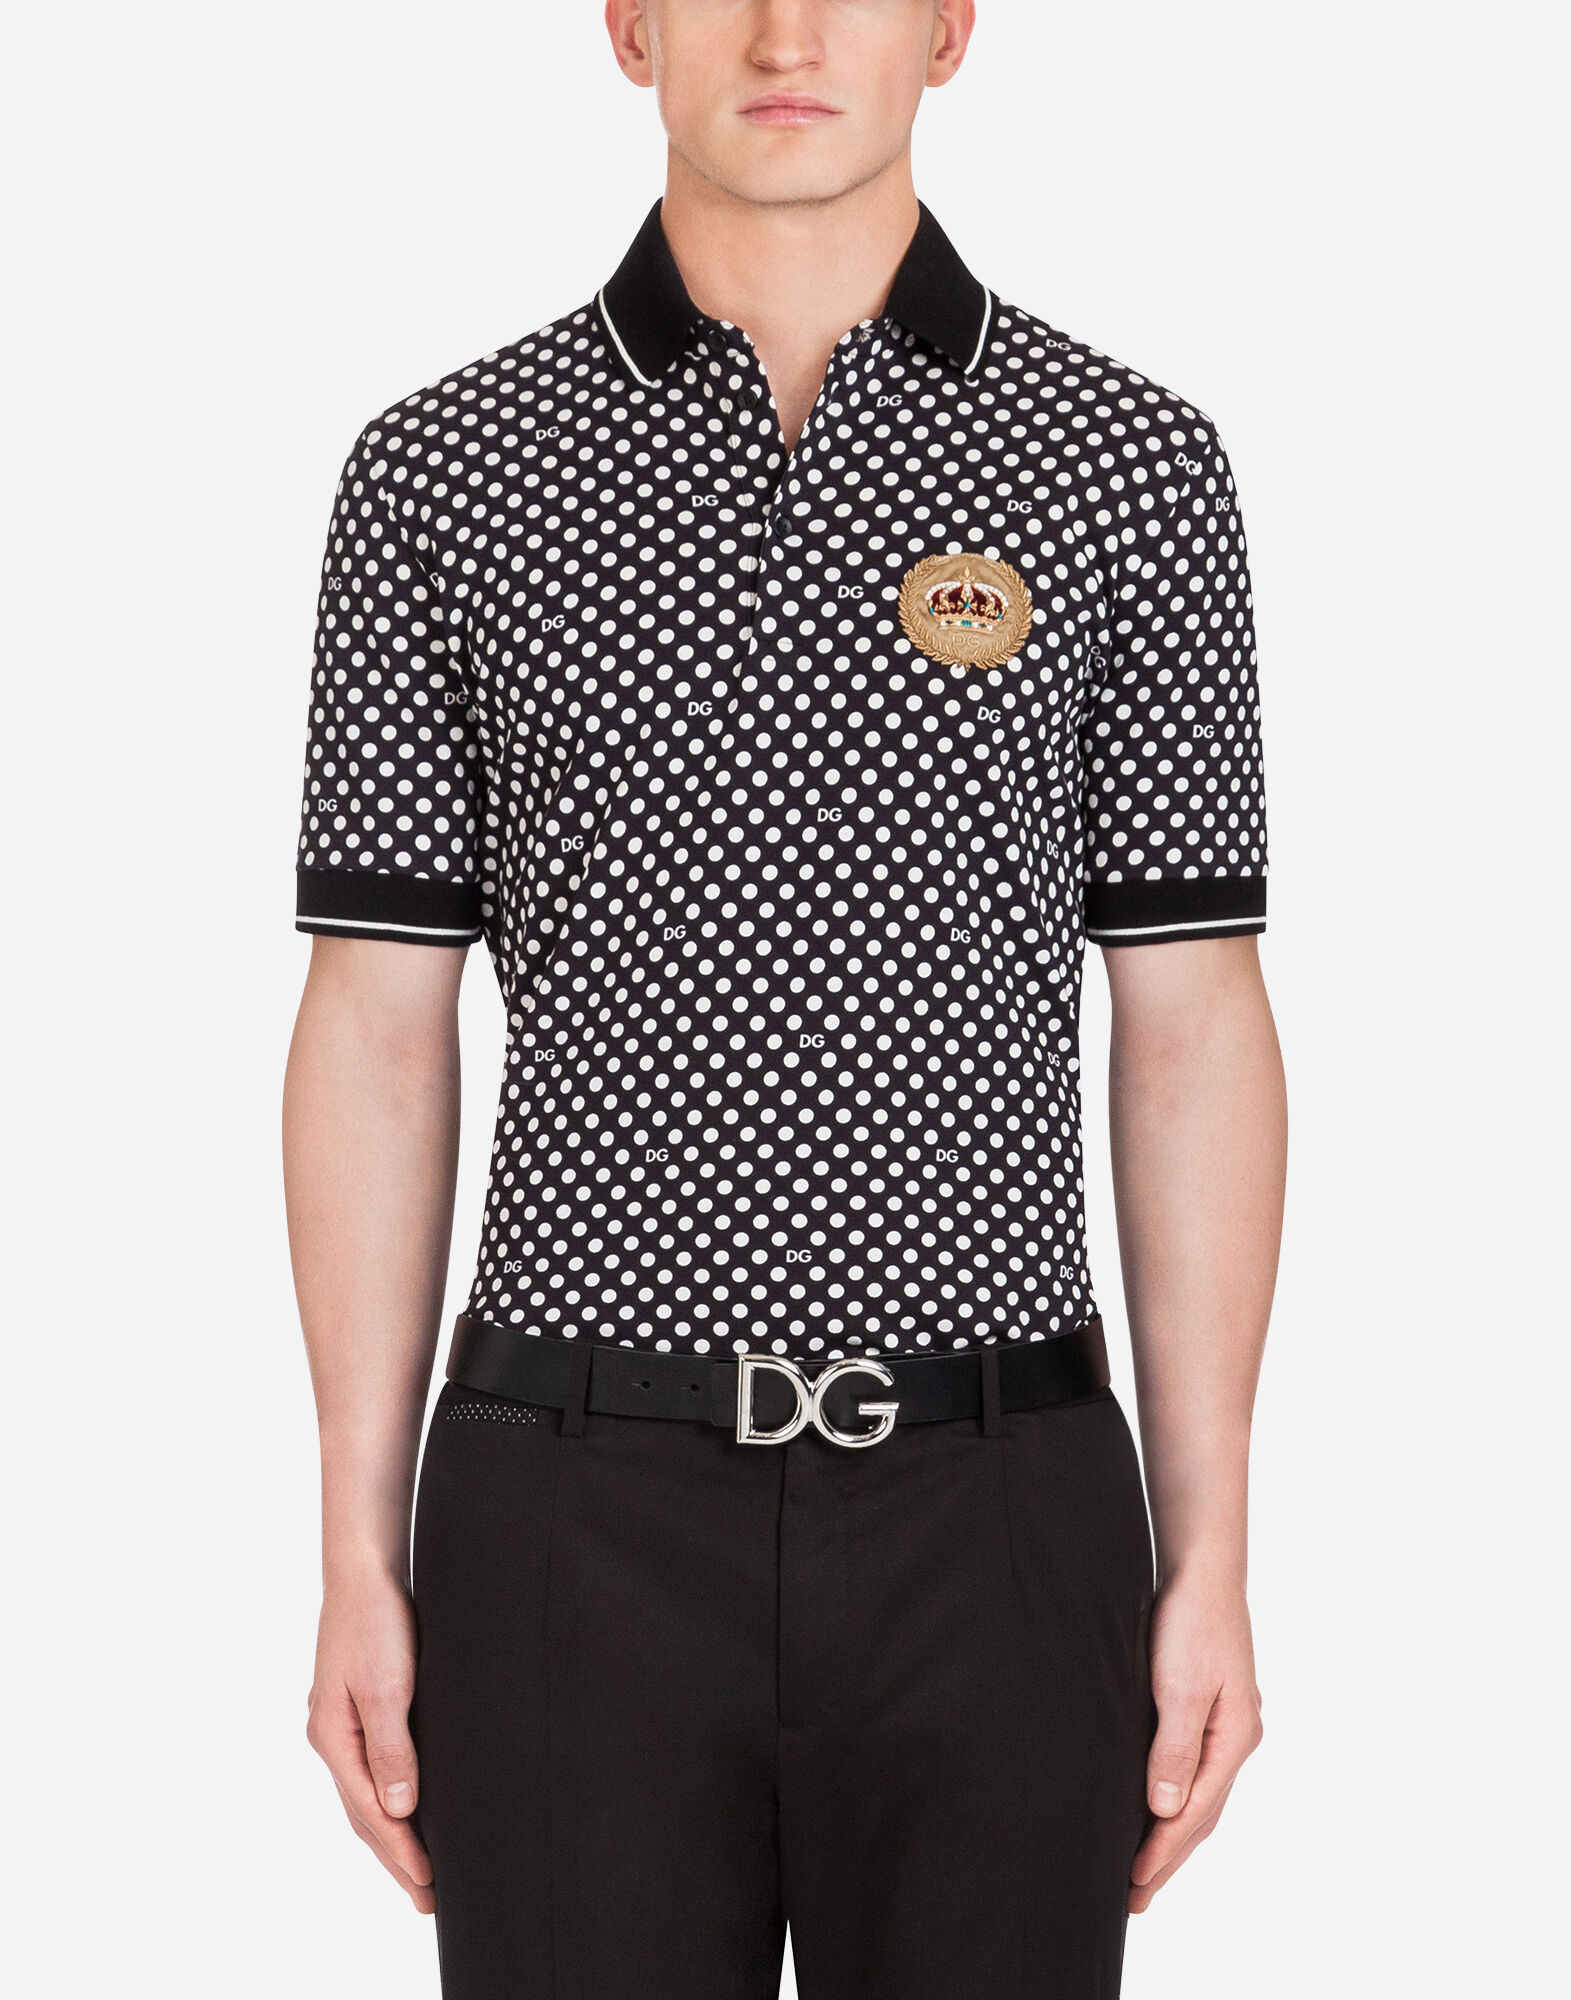 PRINTED COTTON PIQUÉ POLO SHIRT WITH PATCH from DOLCE & GABBANA